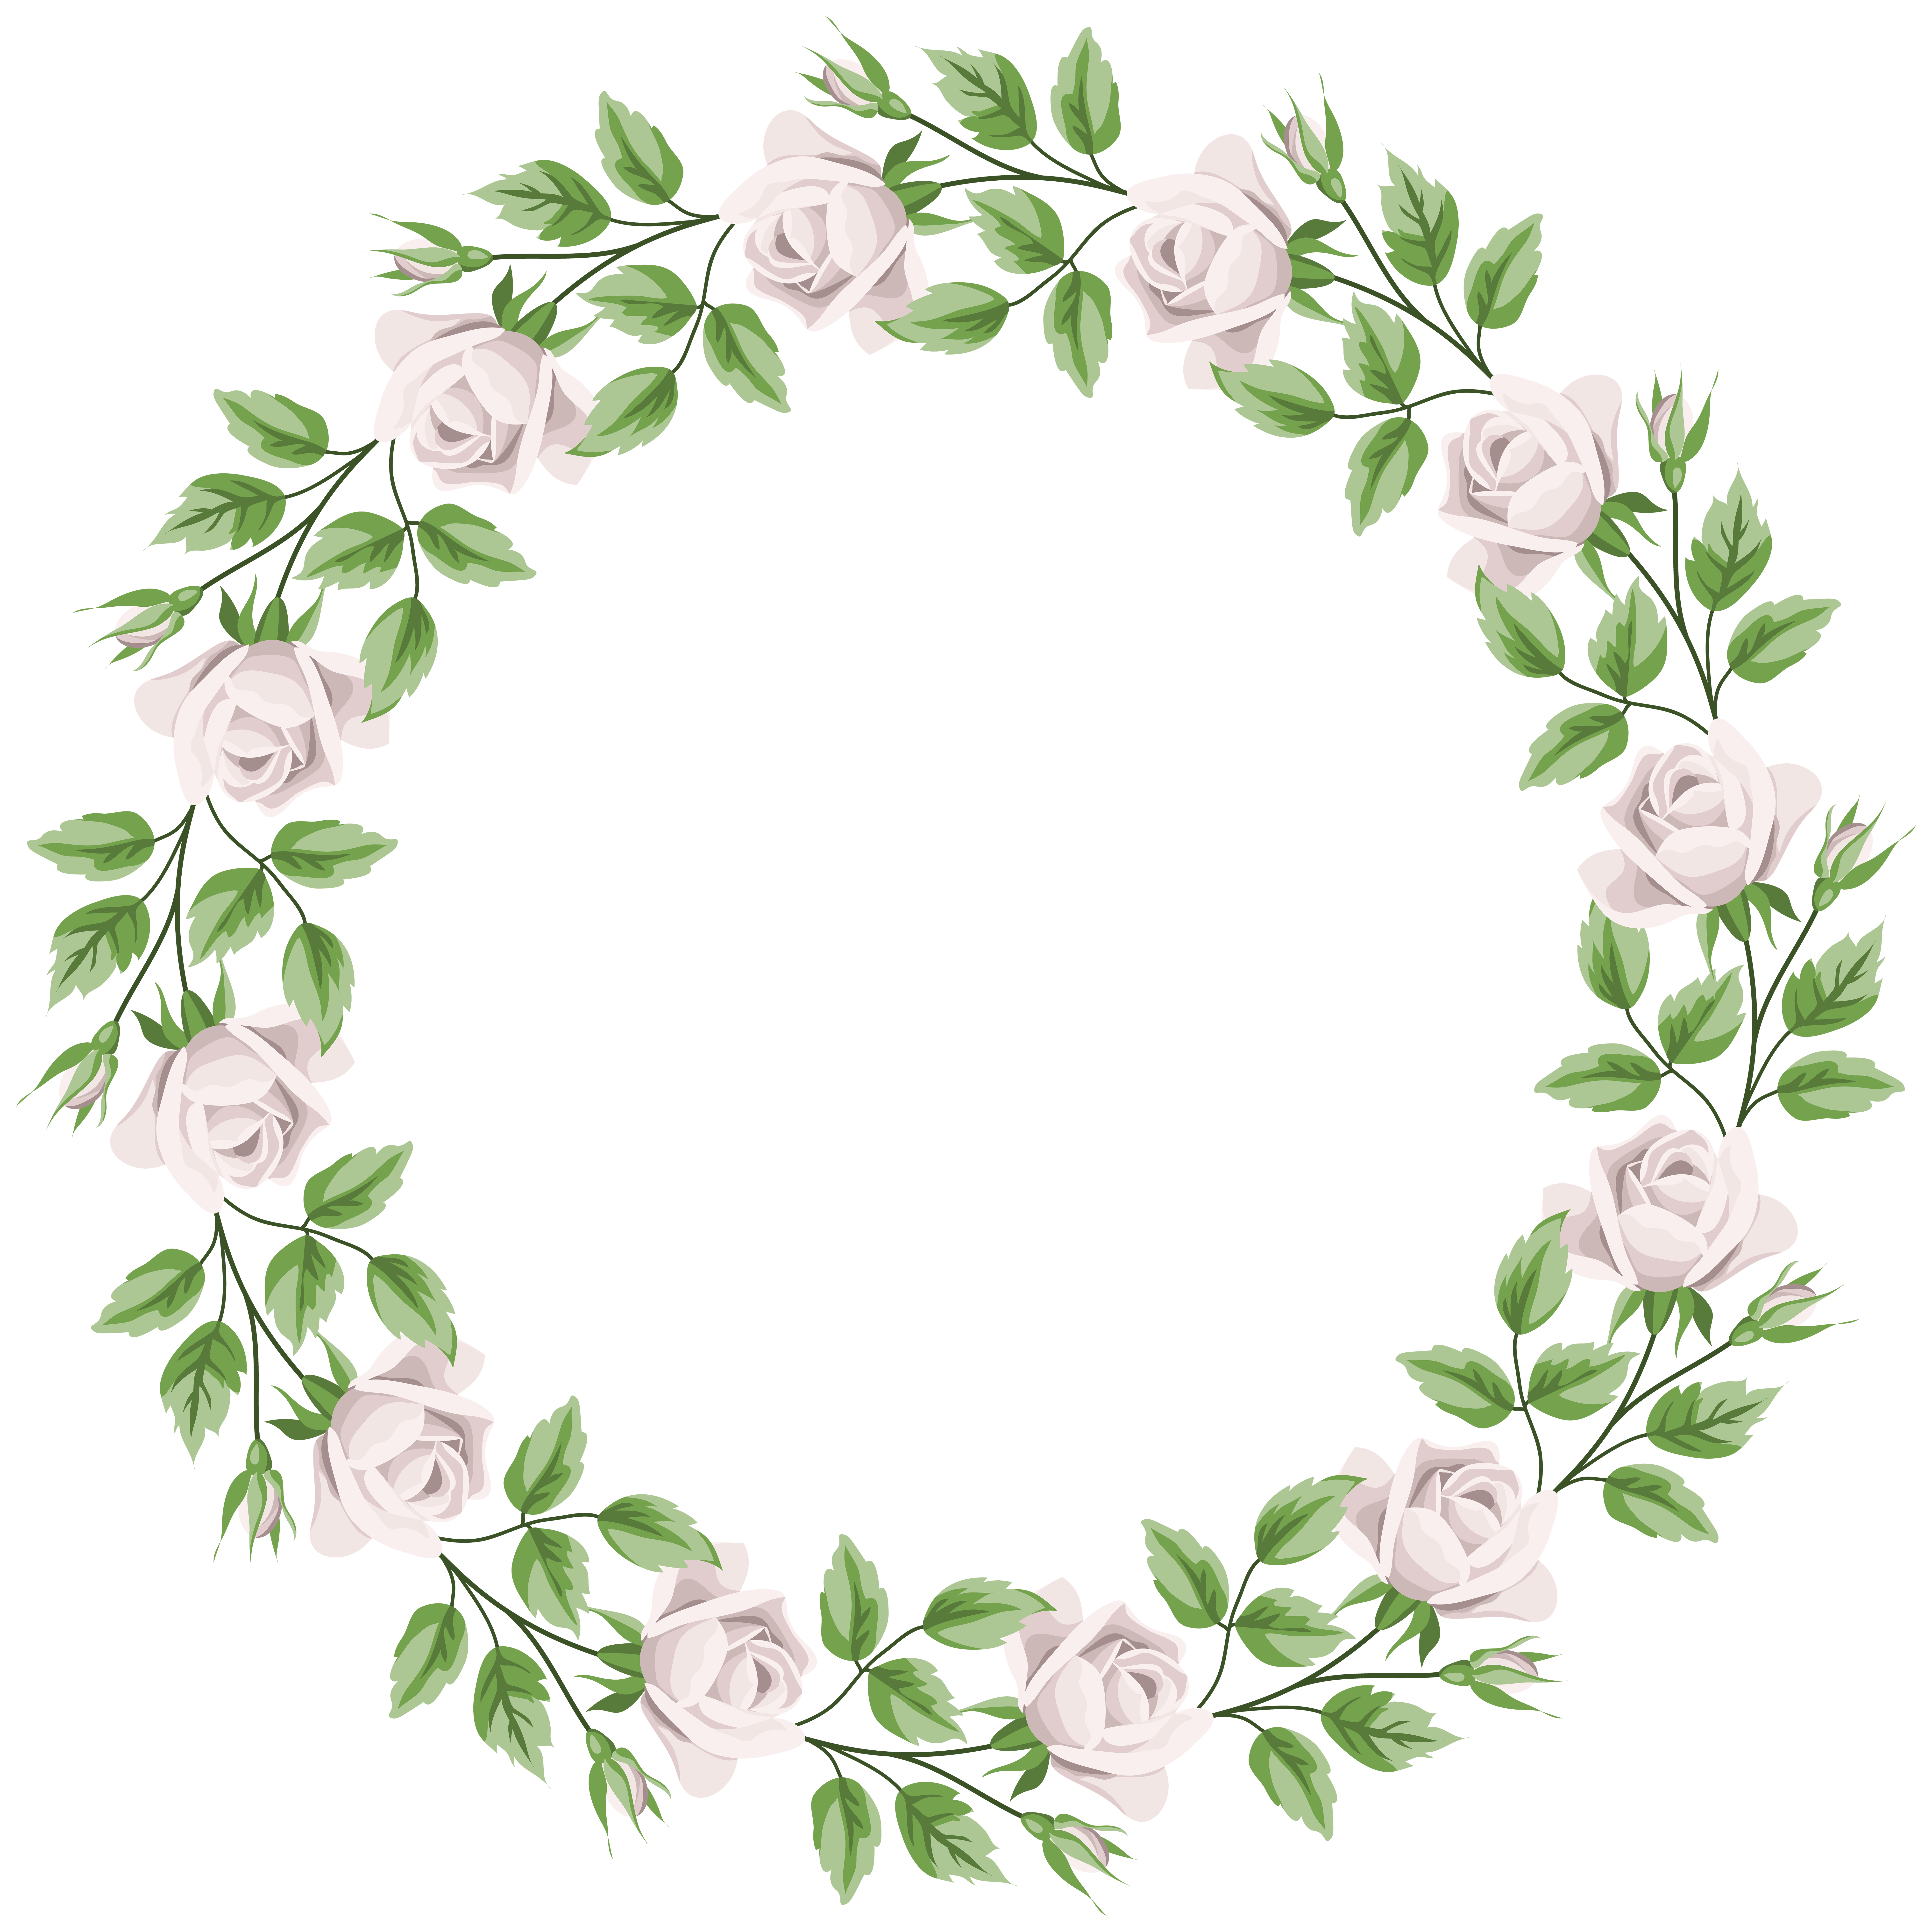 Clipart-flower borders and frames image black and white download White Rose Border Frame Transparent PNG Clip Art | Gallery ... image black and white download